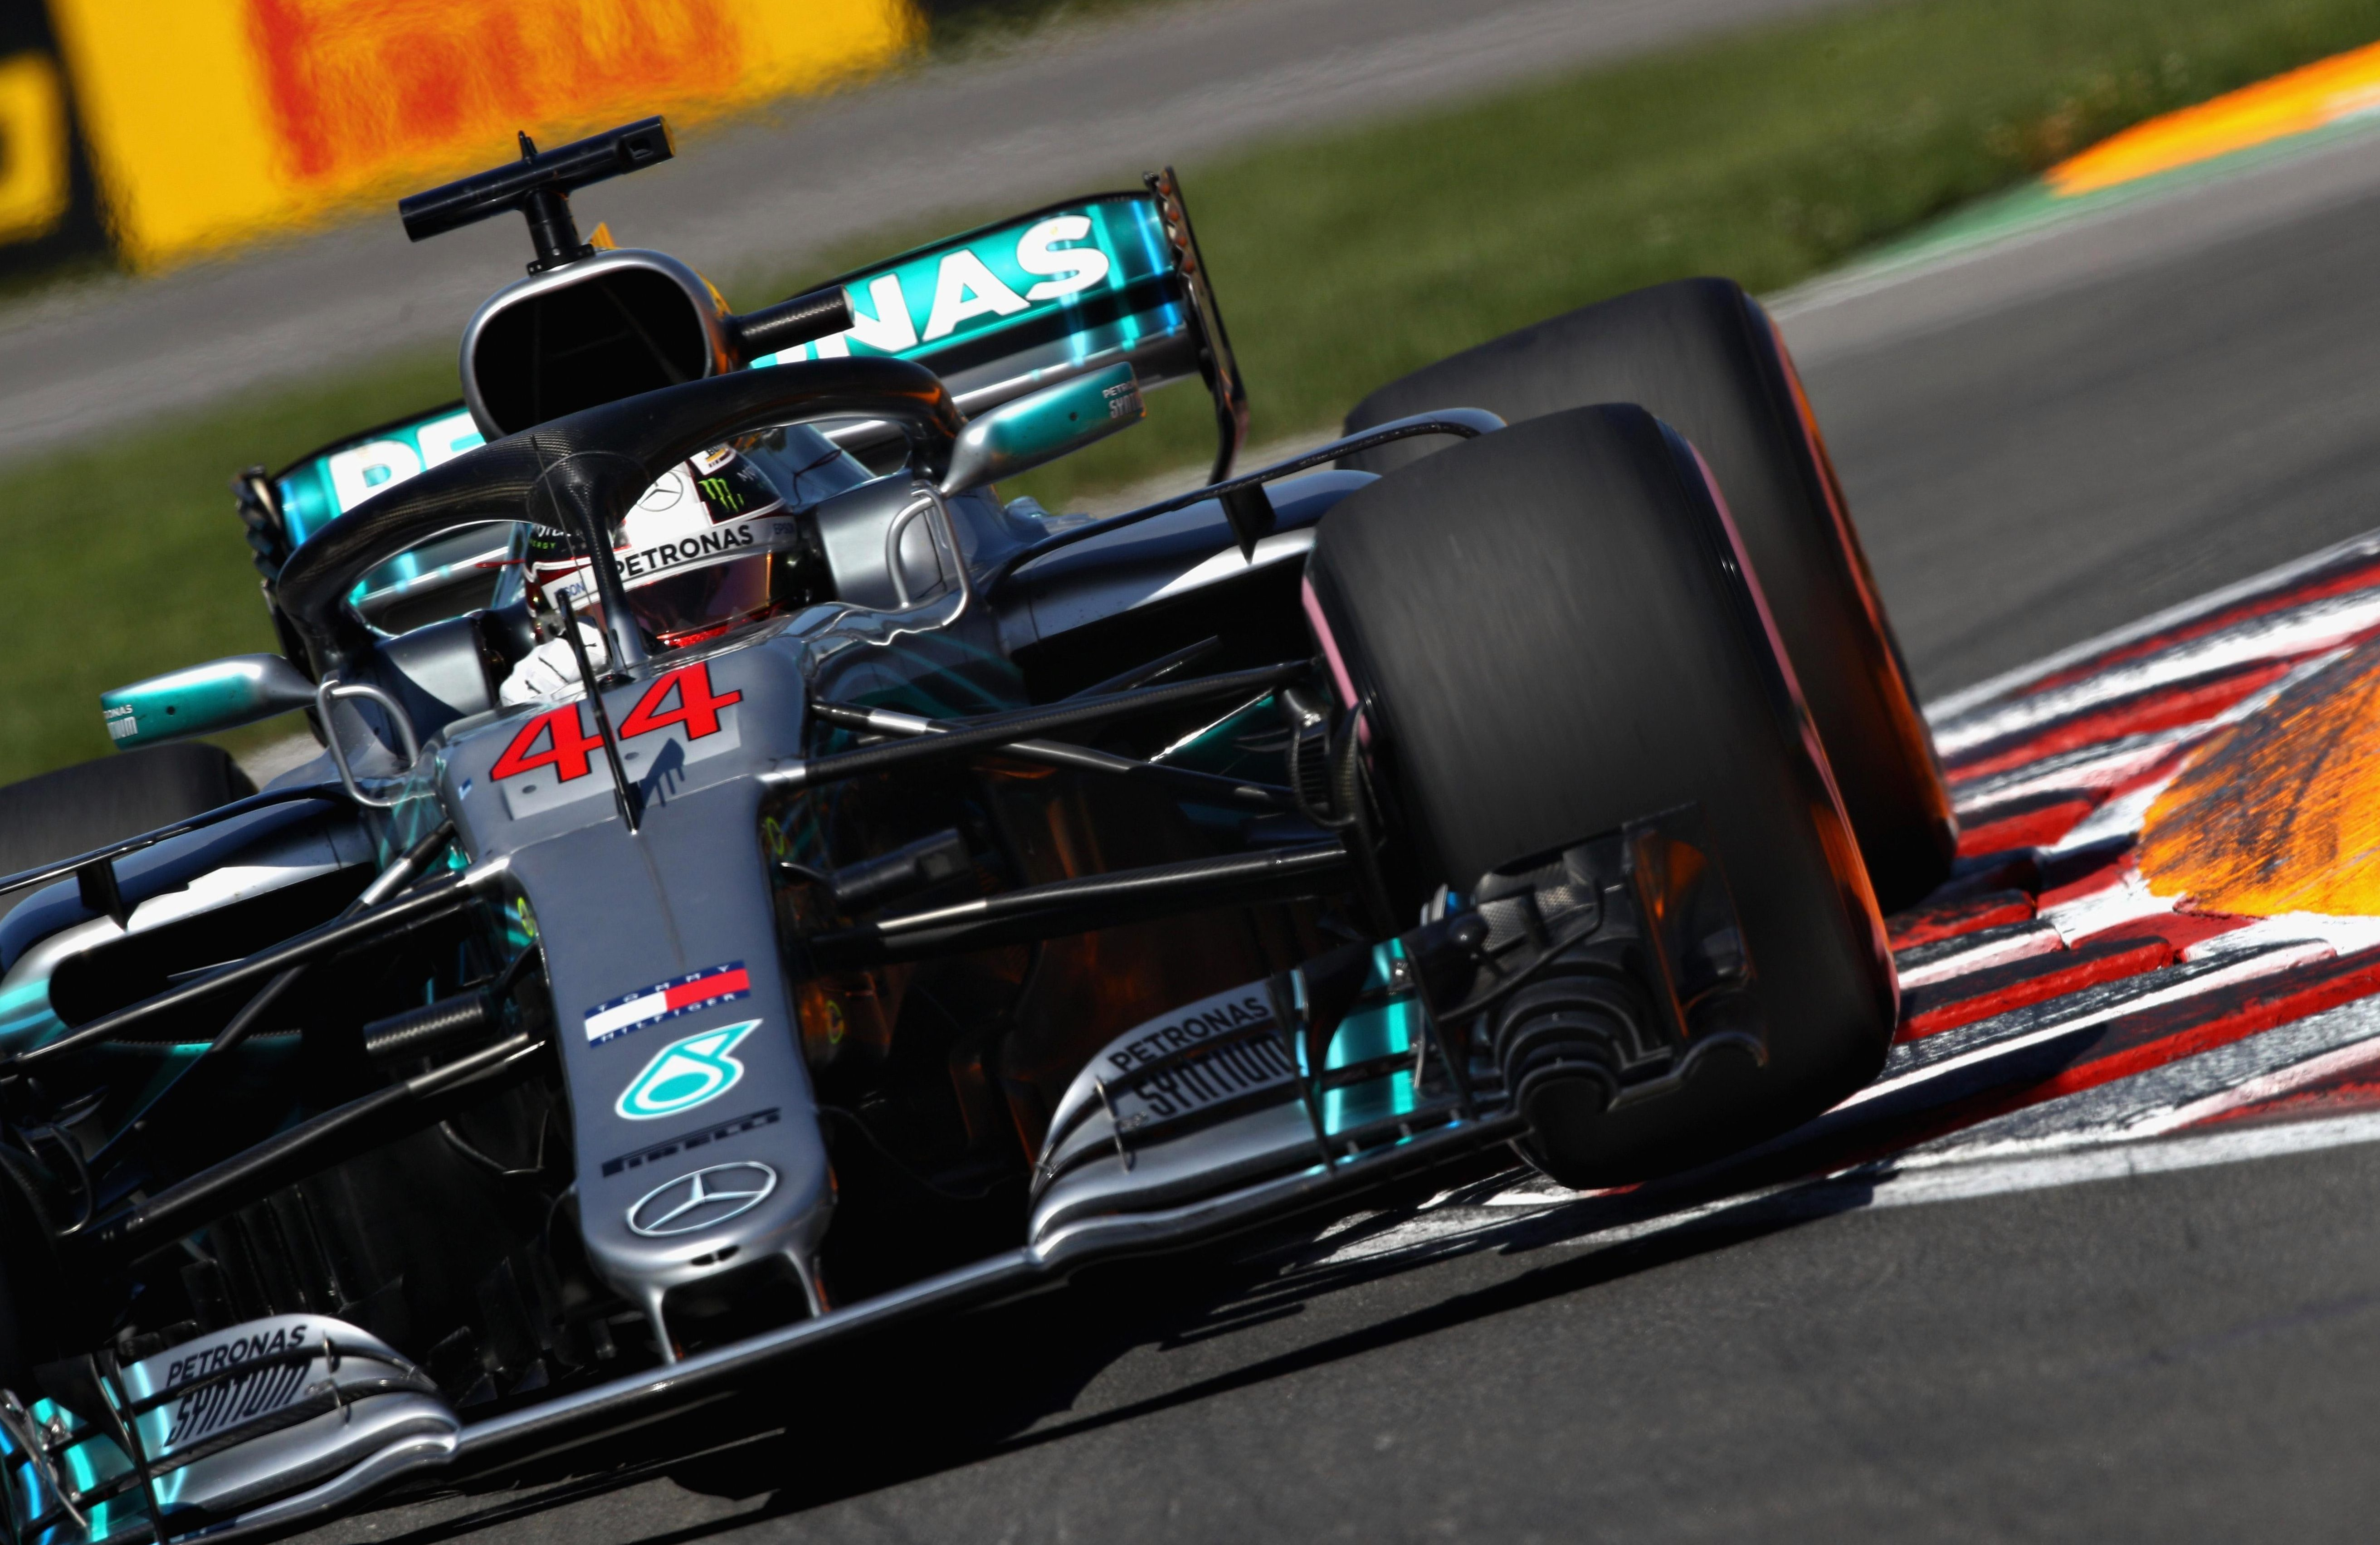 The Mercedes ace came fourth in qualifying for the Grand Prix